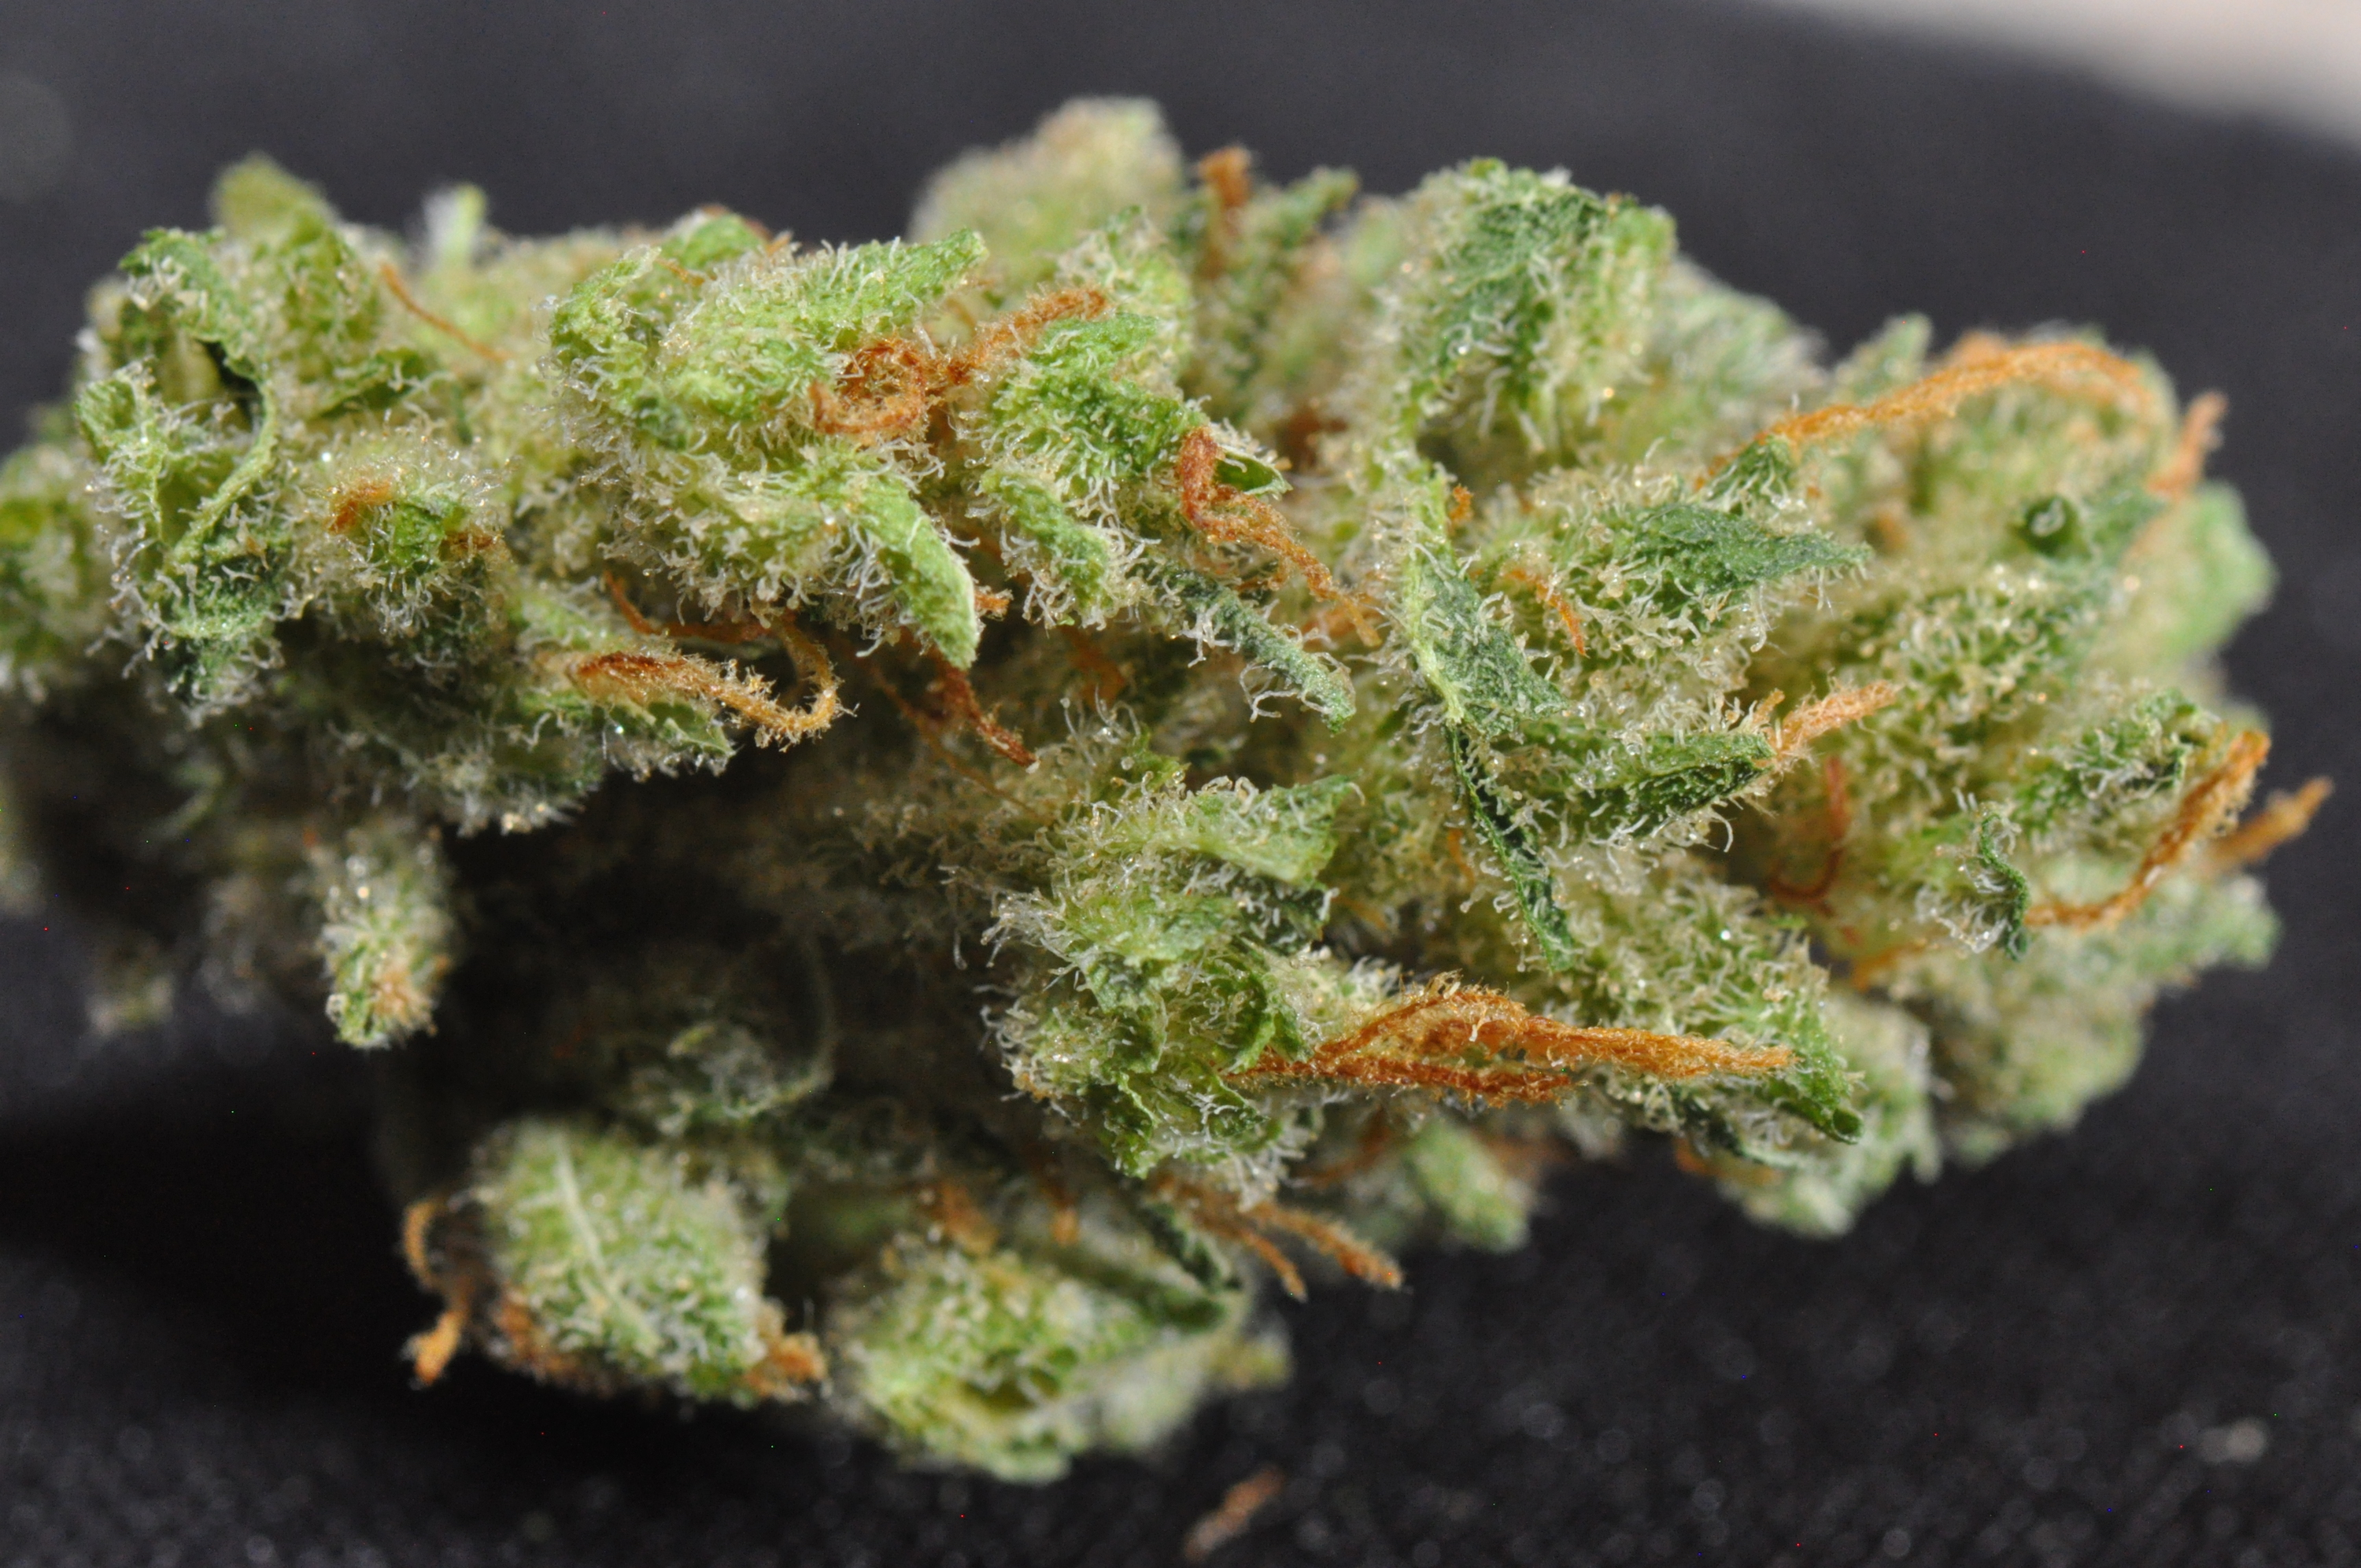 Kyle Kushman's Strawberry Cough